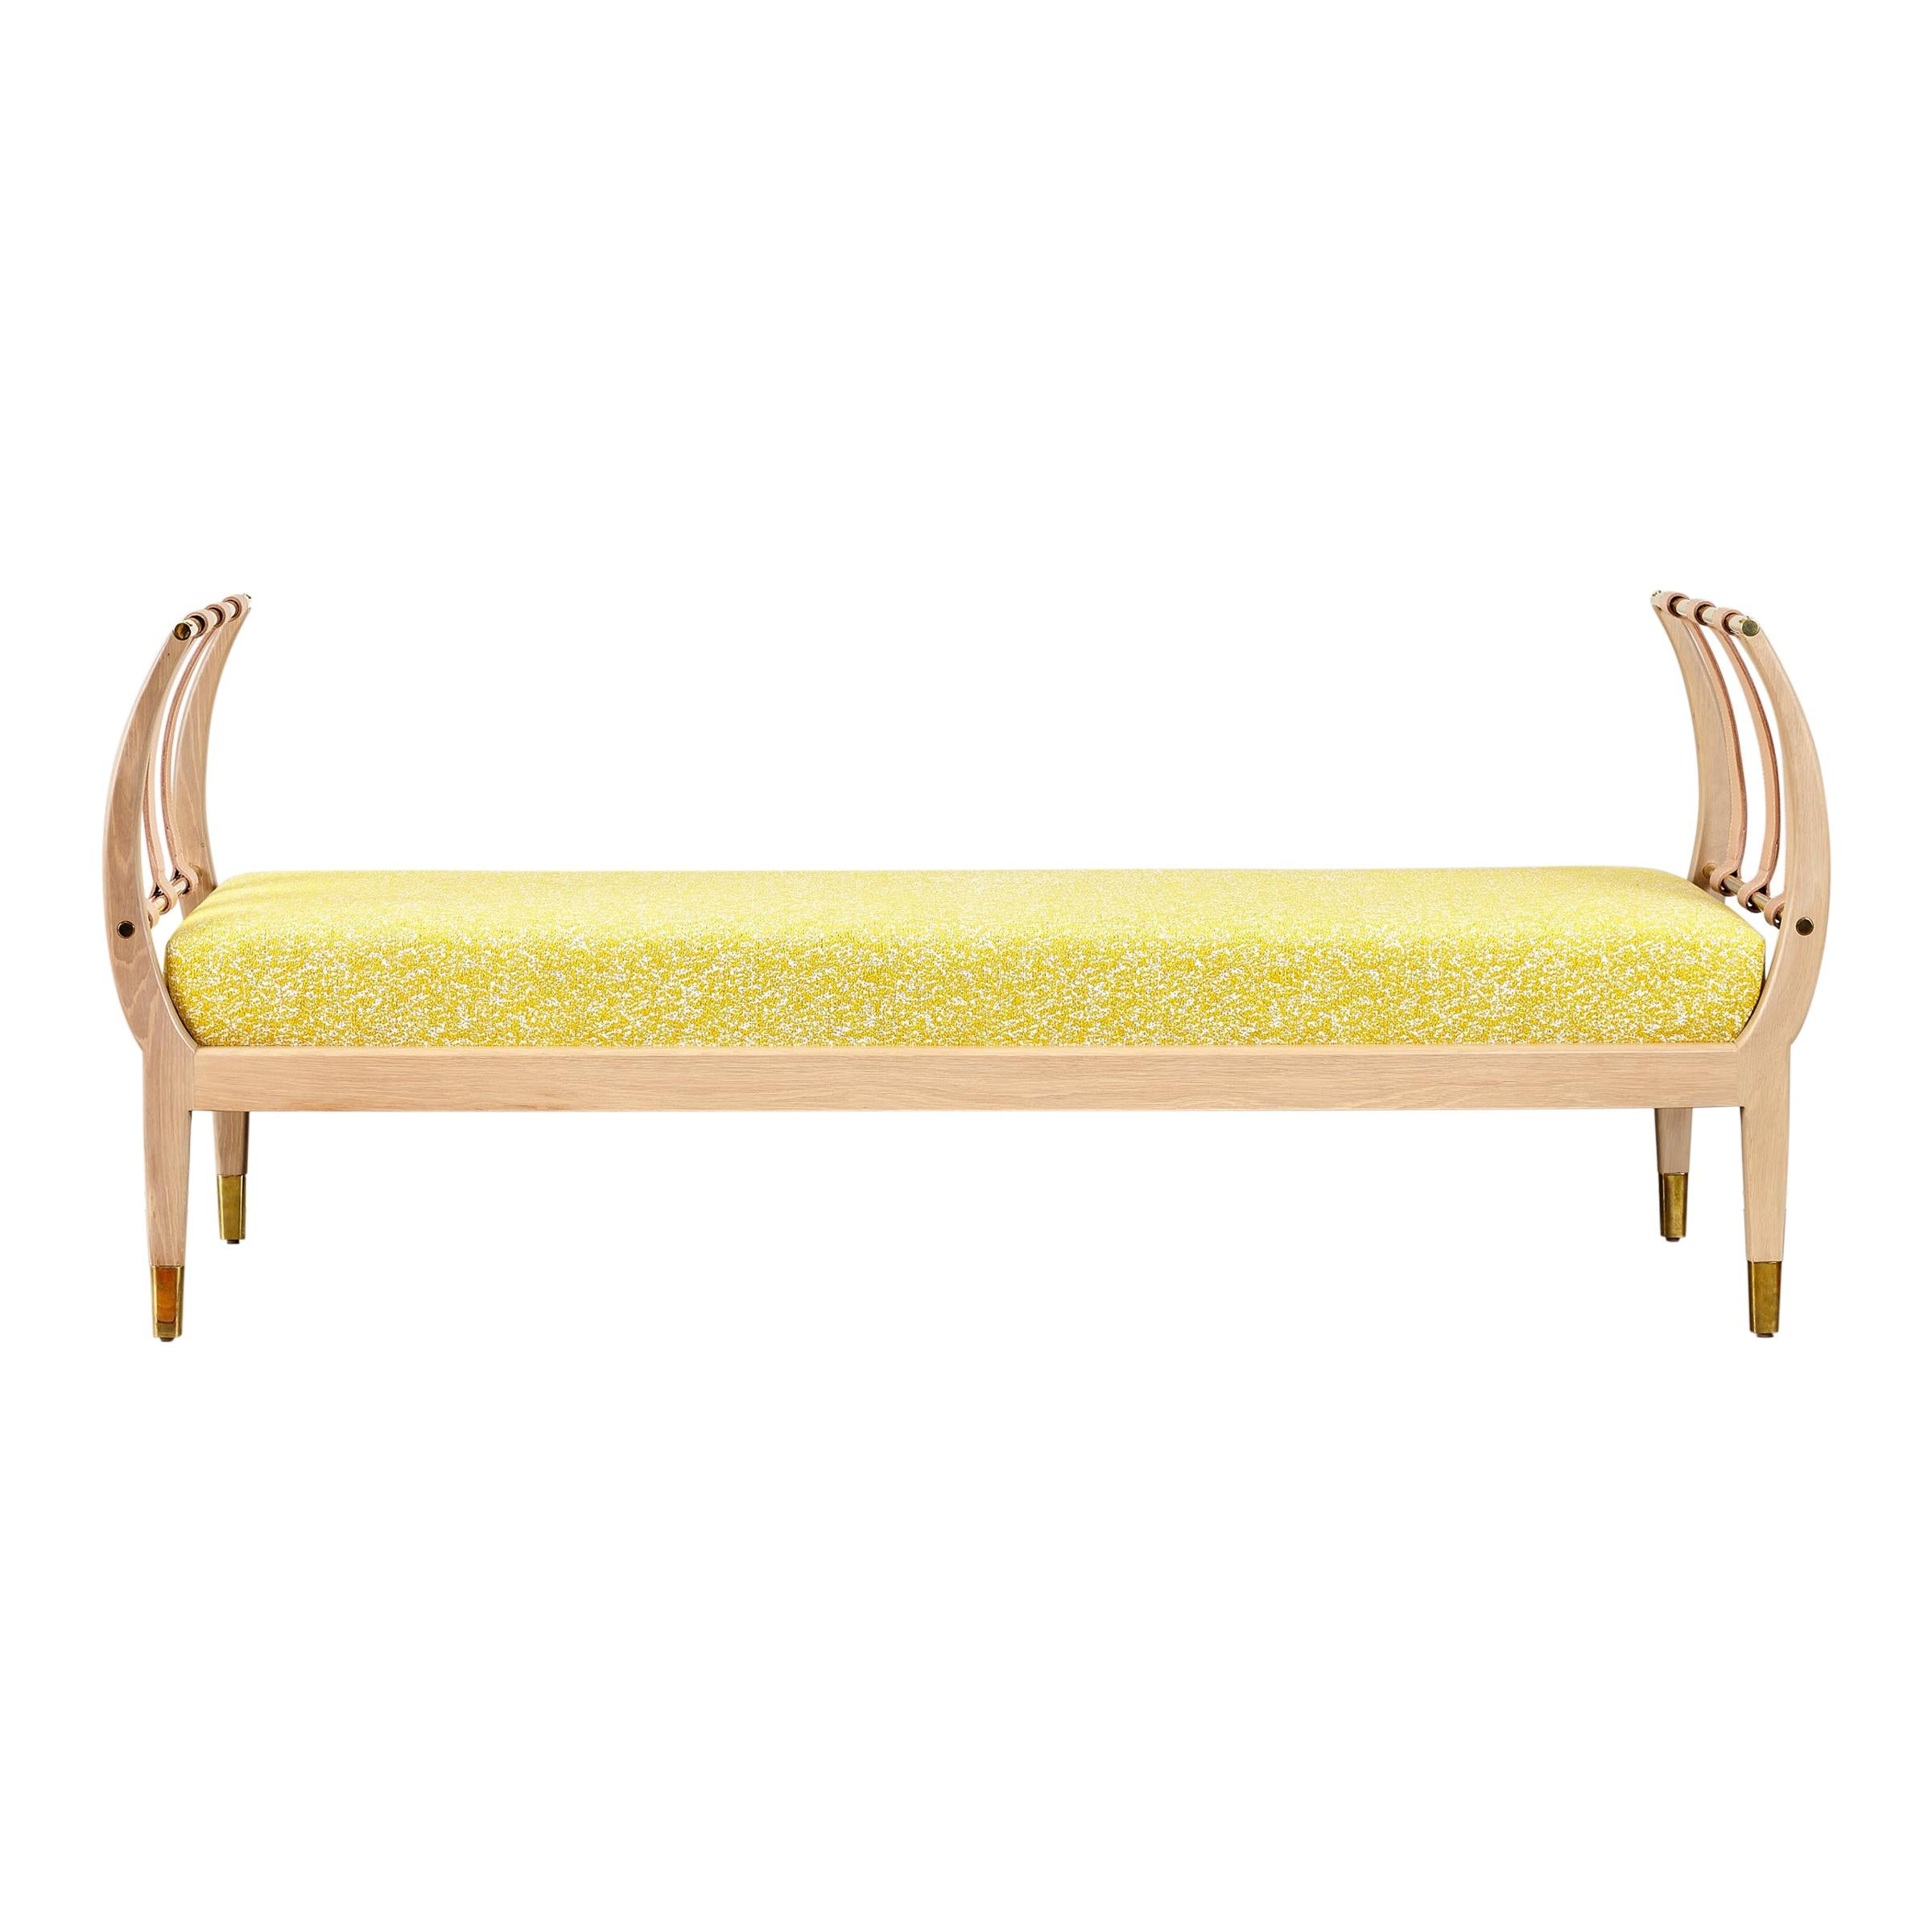 Rib Bench with Wood, Leather, Polished Brass and COM